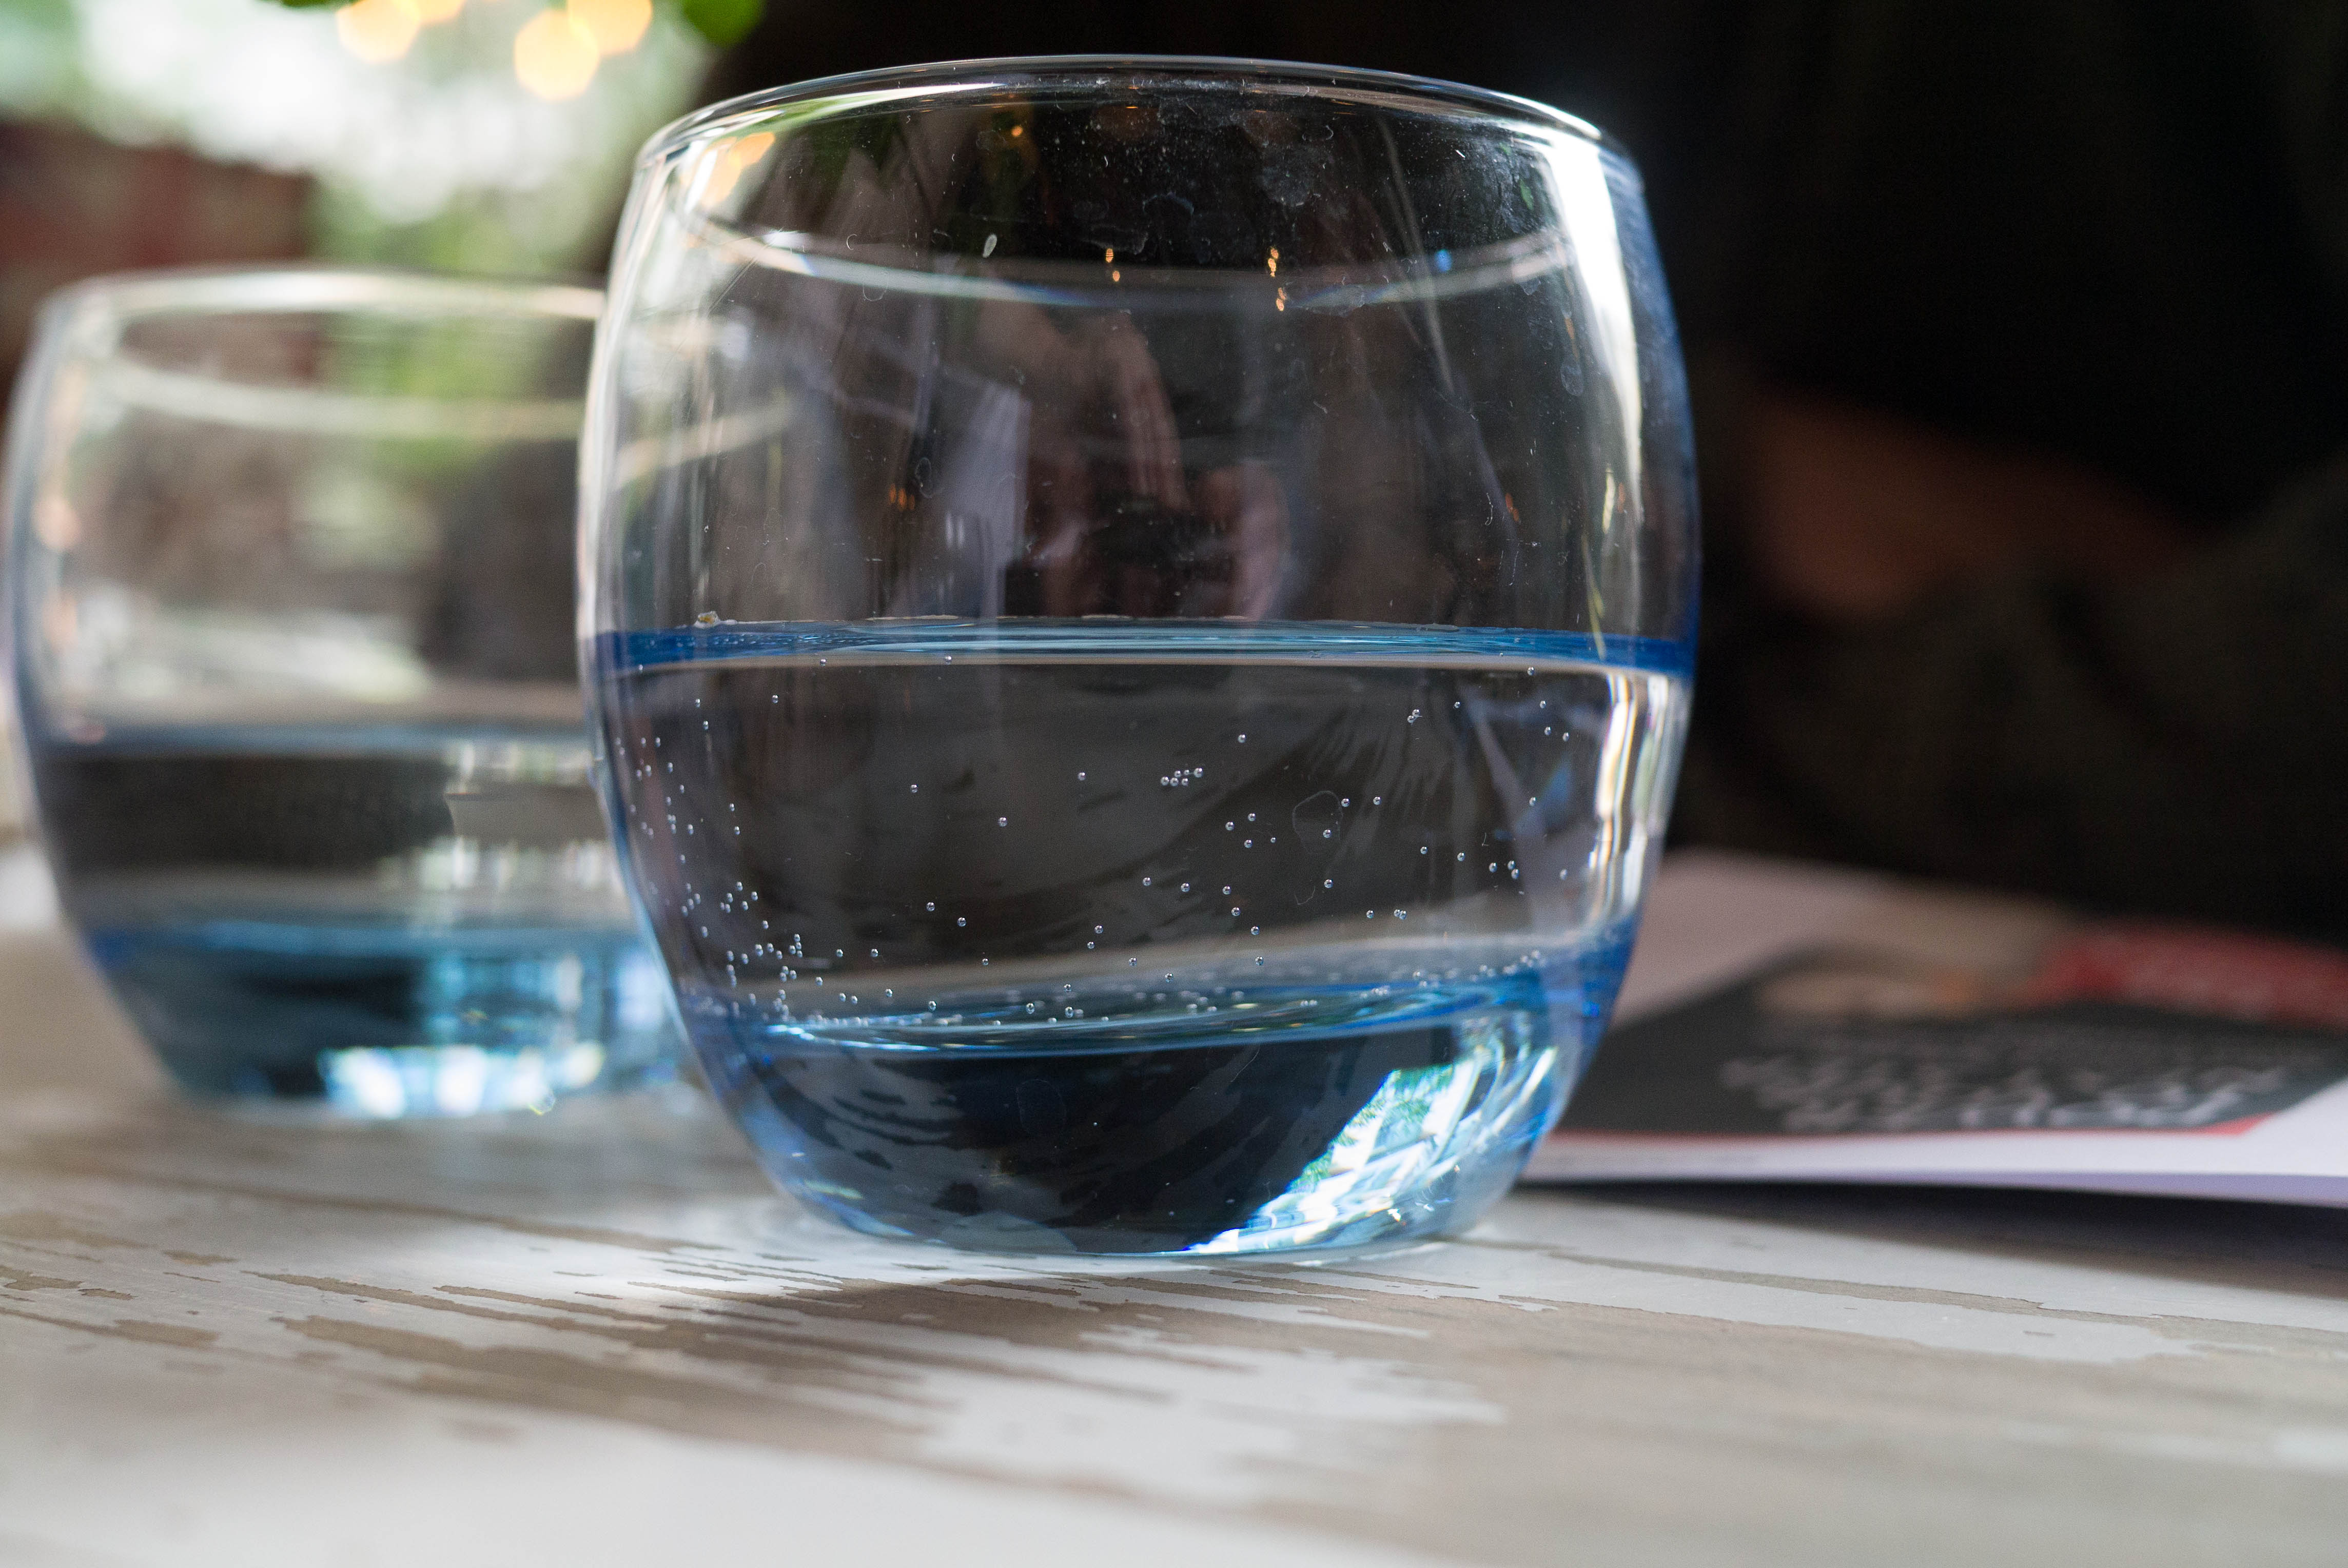 Glass of water. Photo by Gioconda Beekman on Flickr.